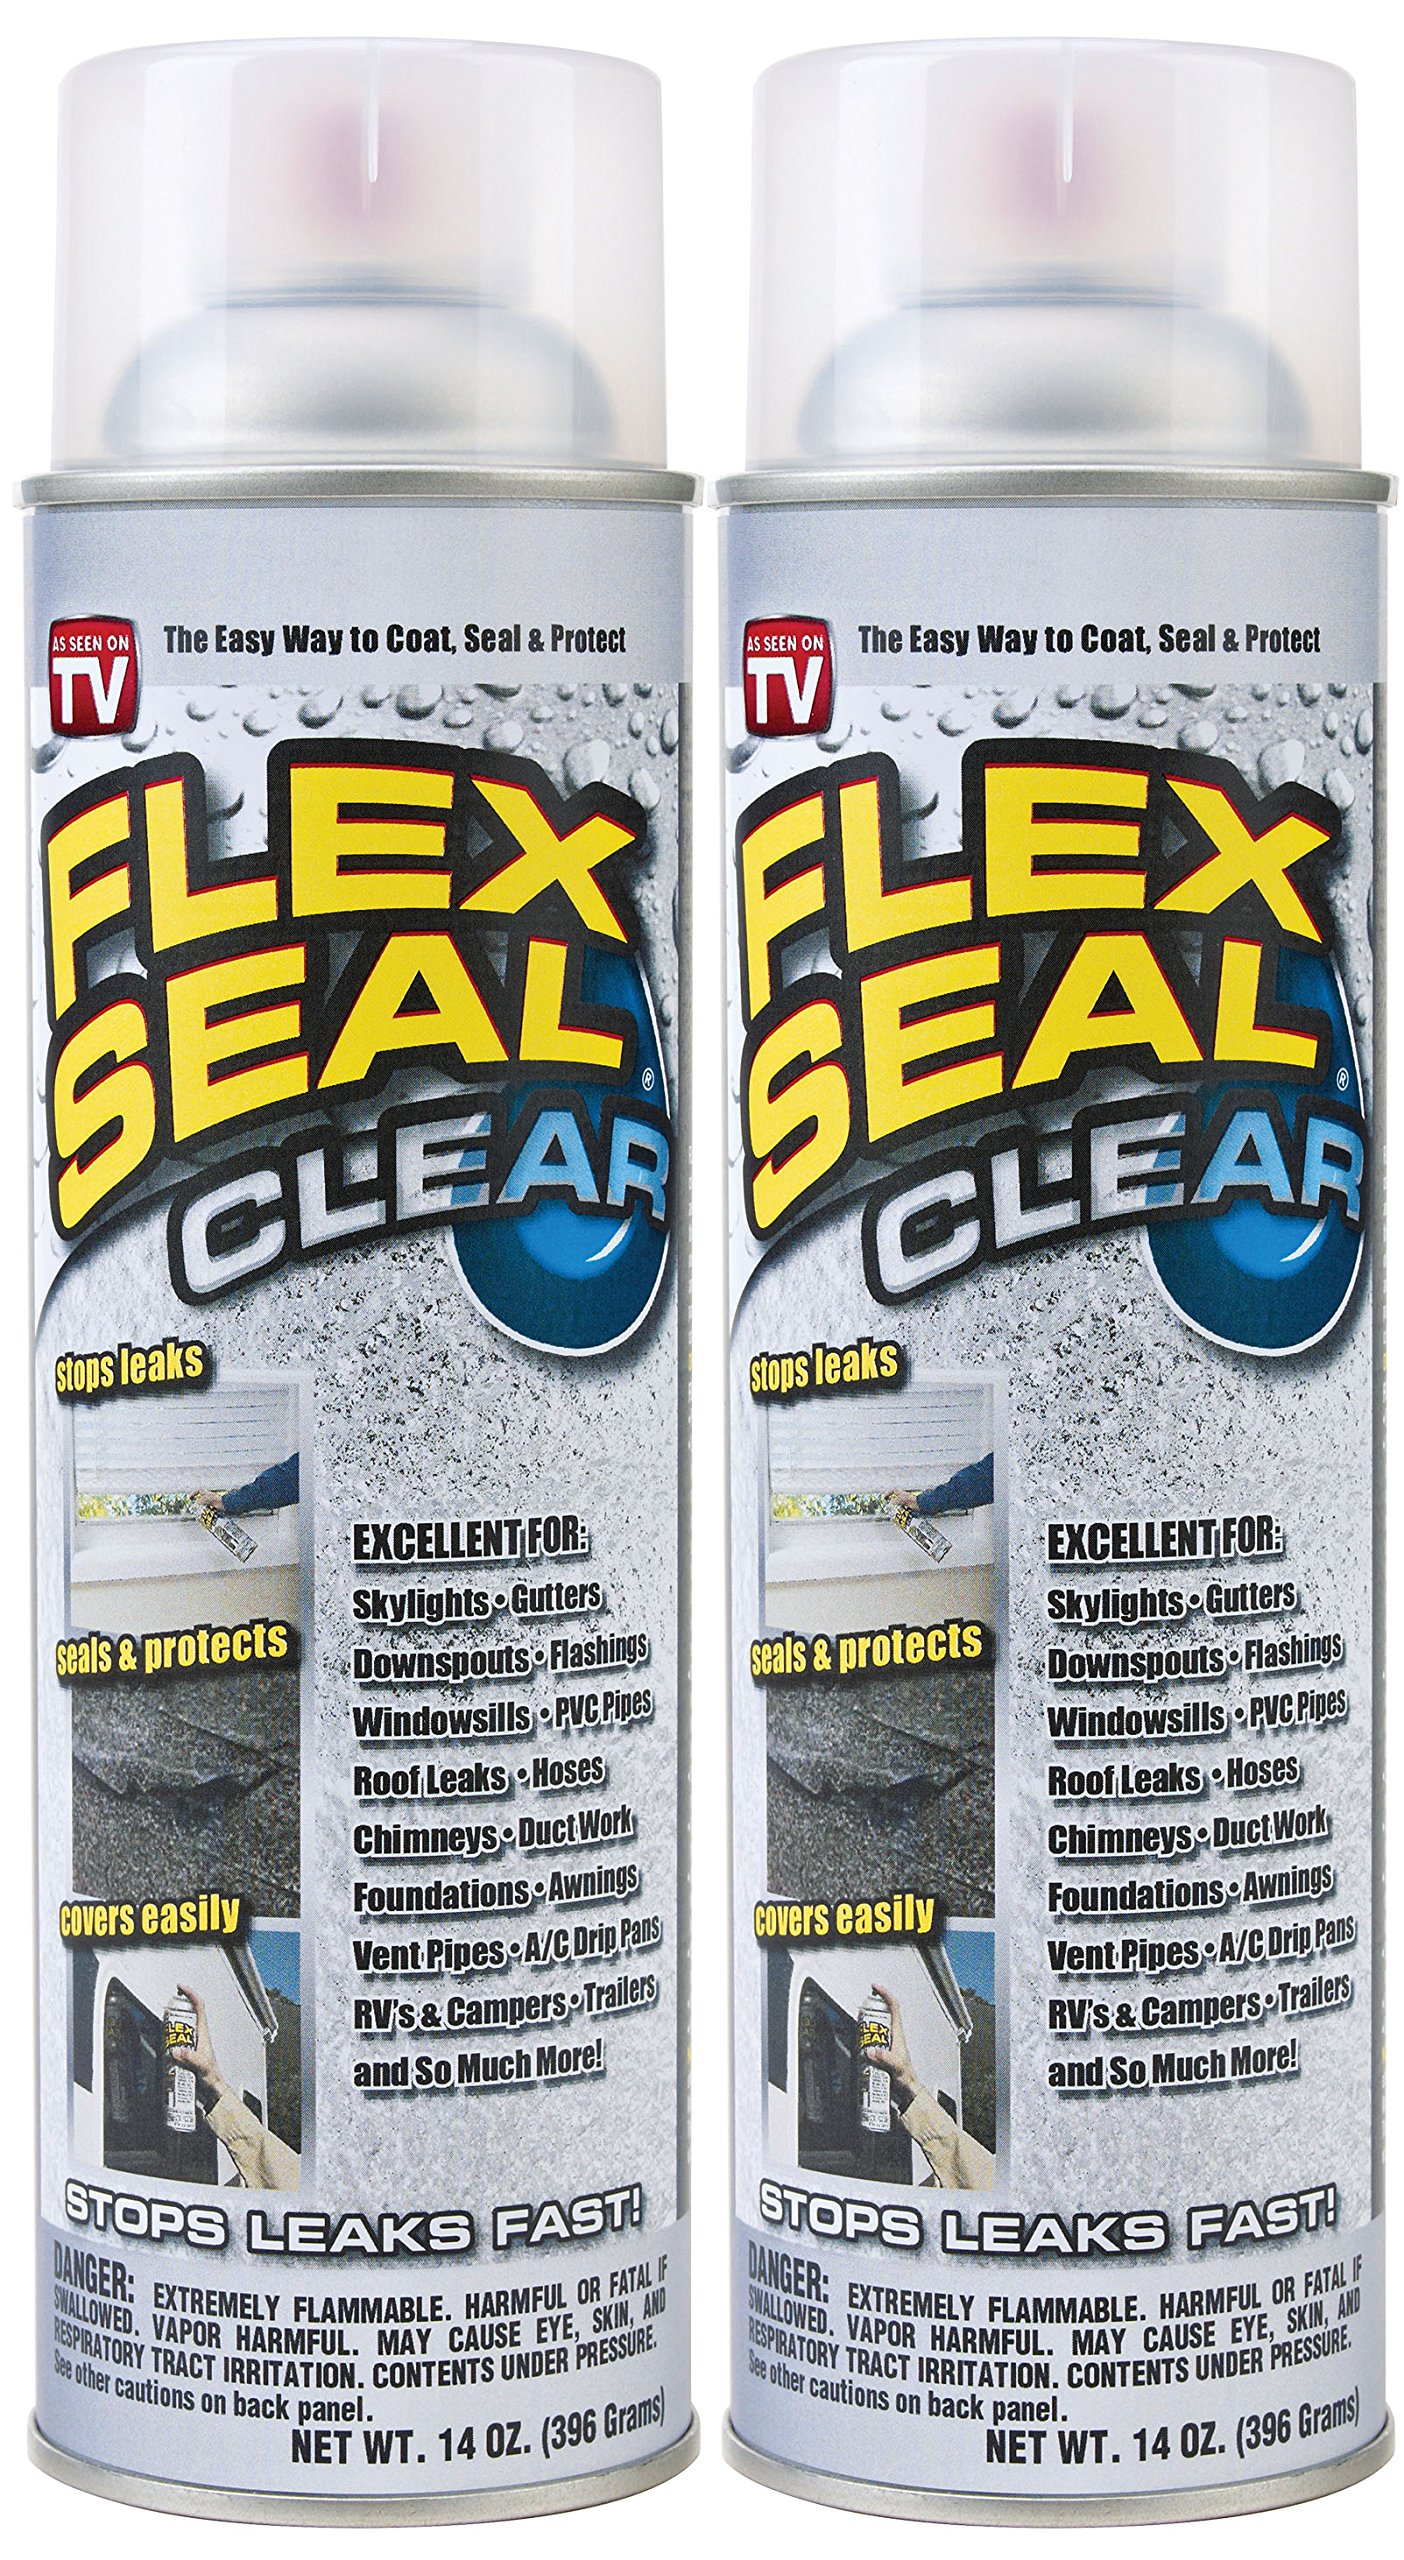 Flex Seal Spray Rubber Sealant Coating, 14-oz, Clear (2 Pack) by Flex Seal